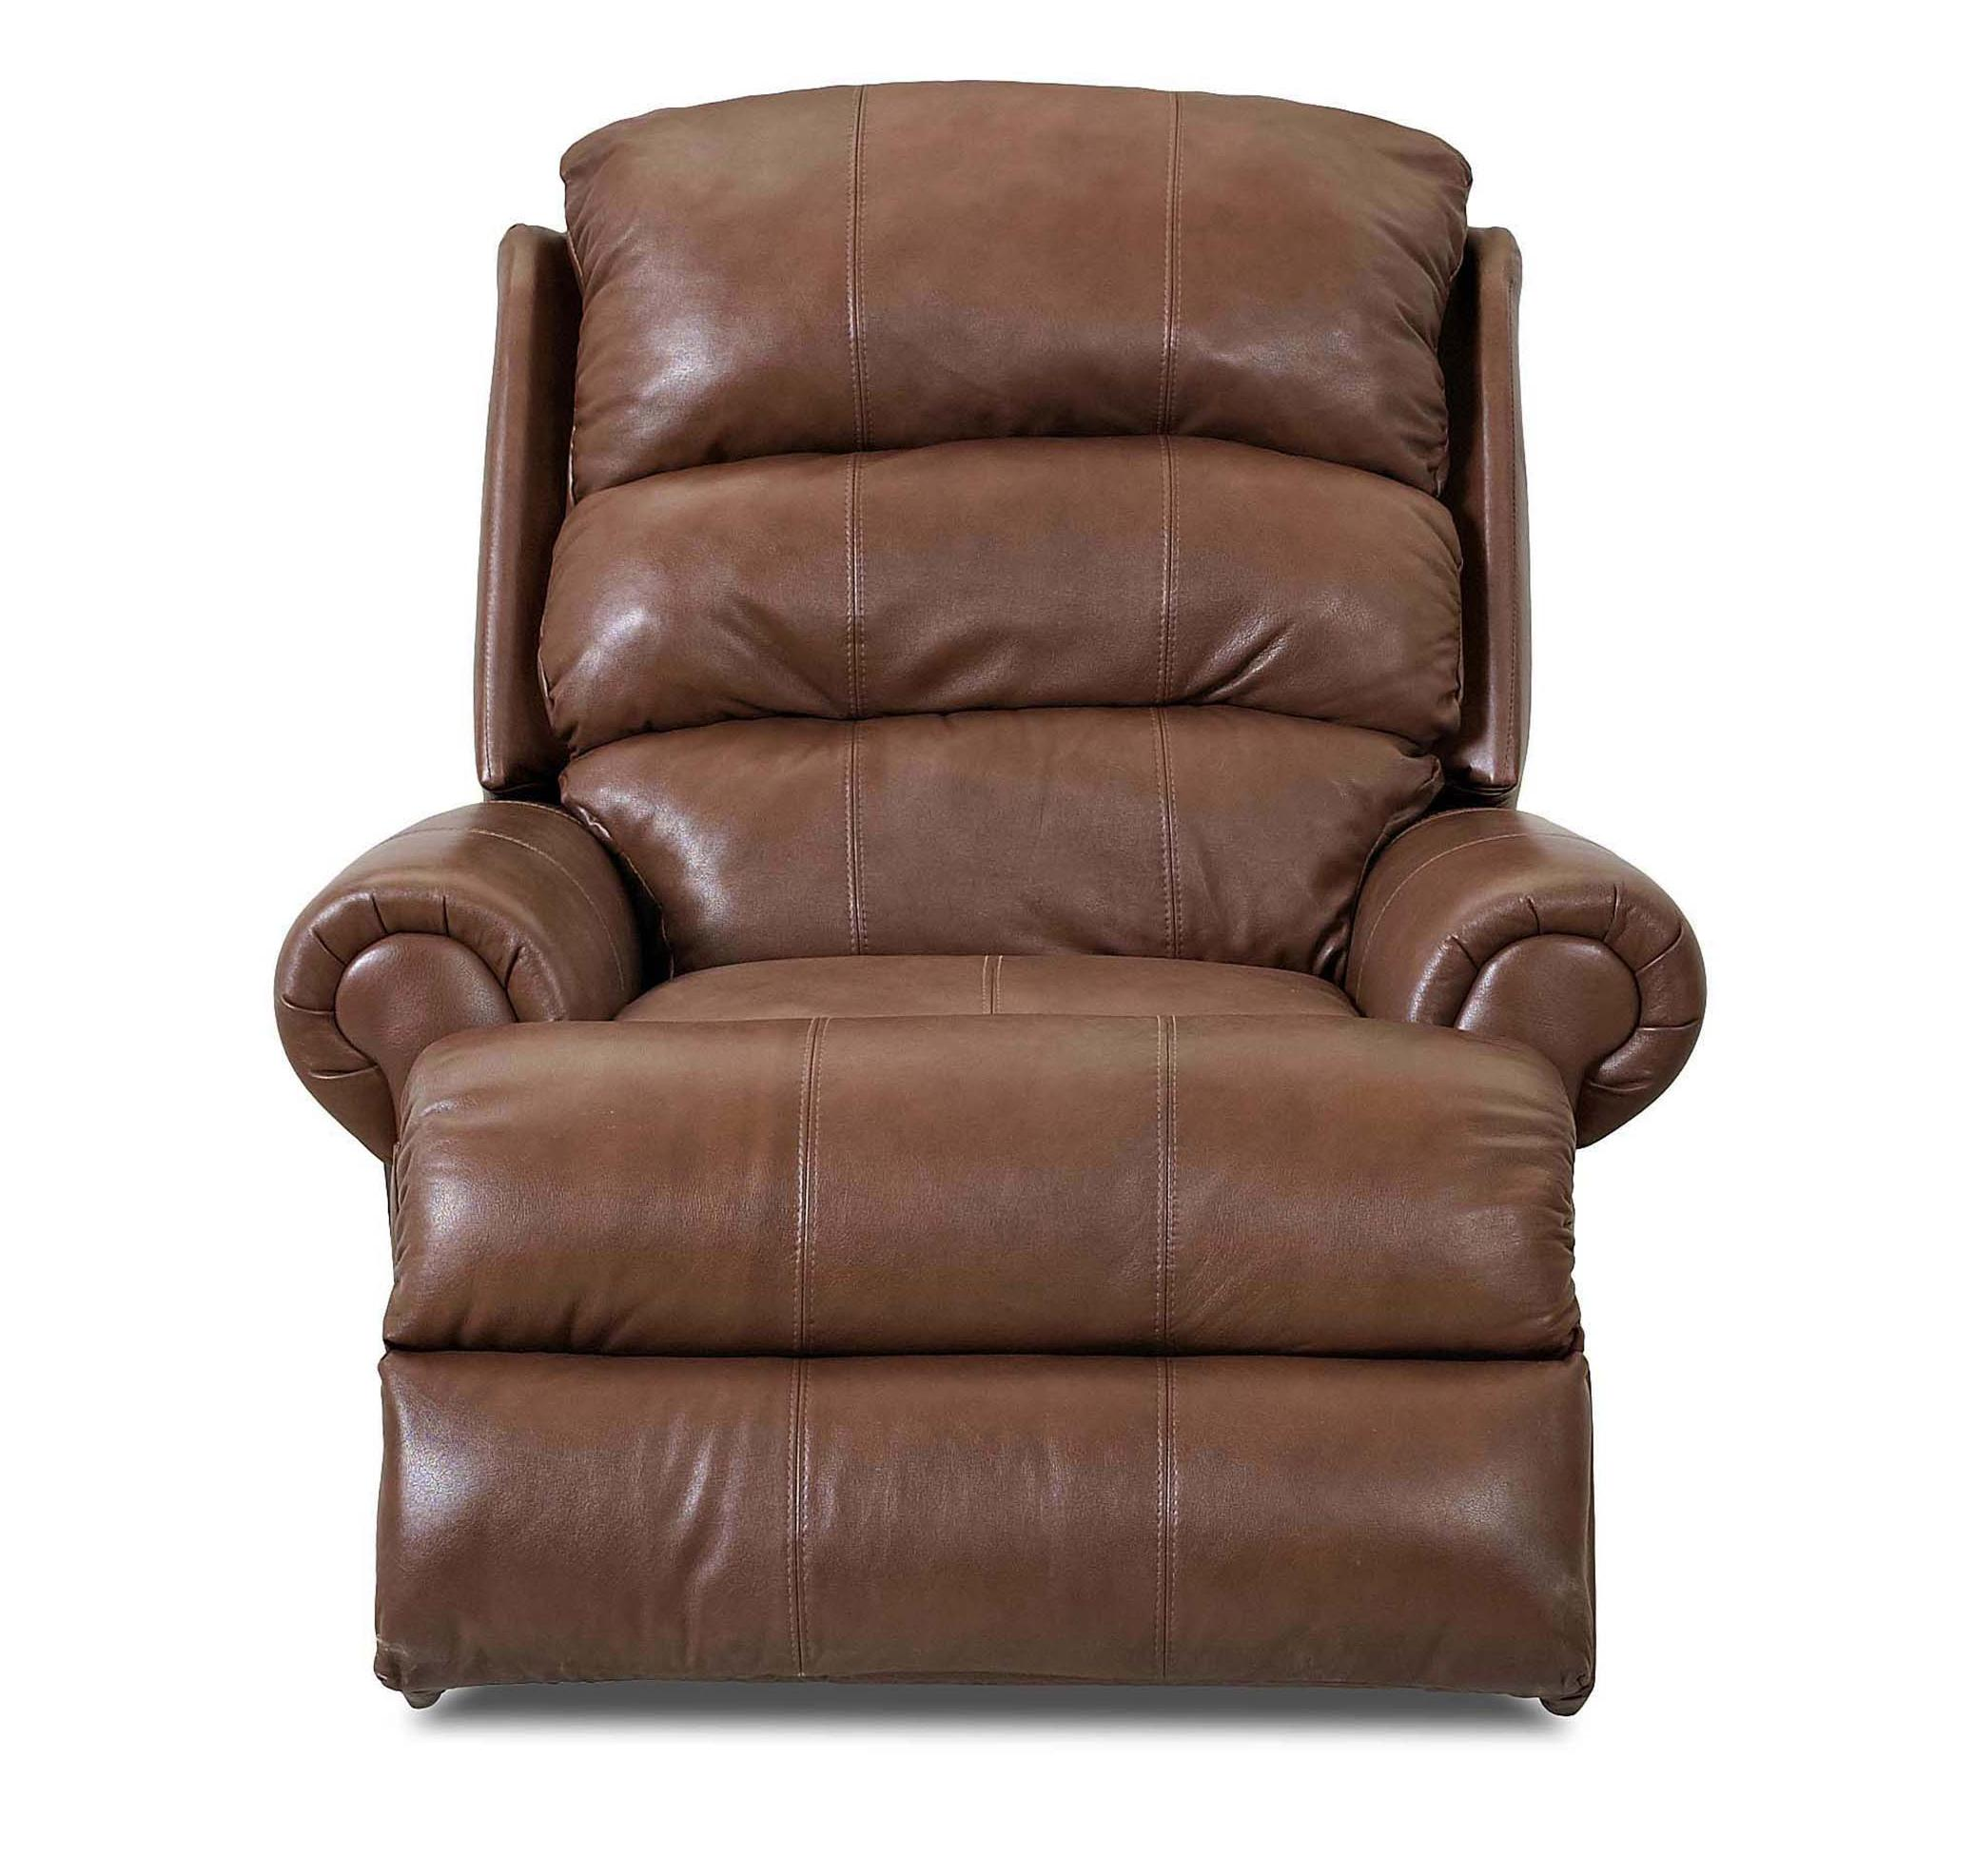 Klaussner Norman Transitional Power Reclining Chair - Item Number: LV91003 PWRC